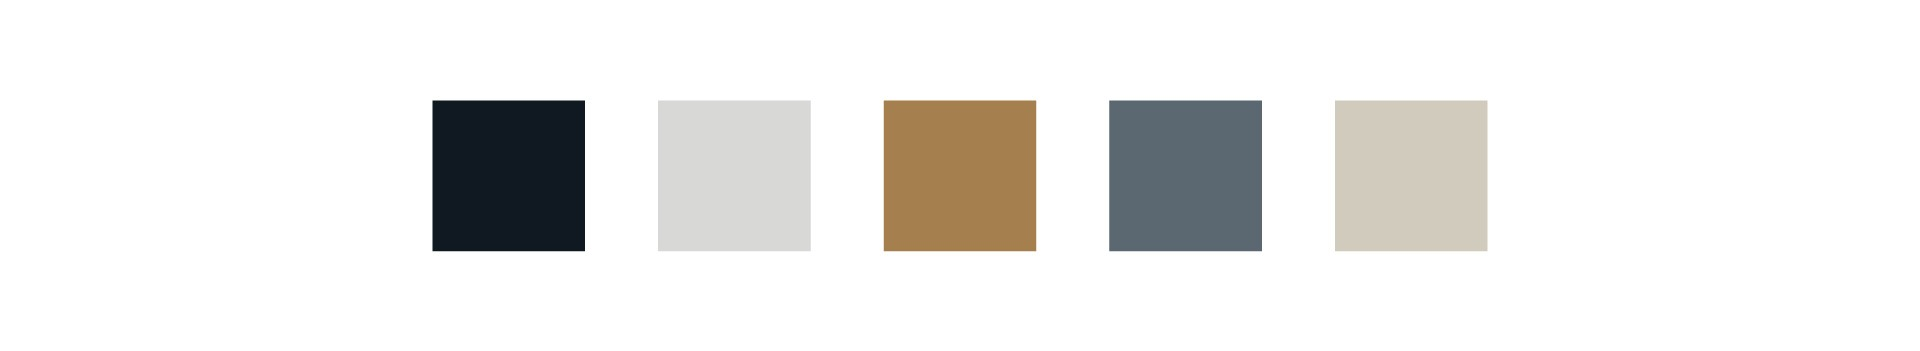 color palette for Twin City Homes brand